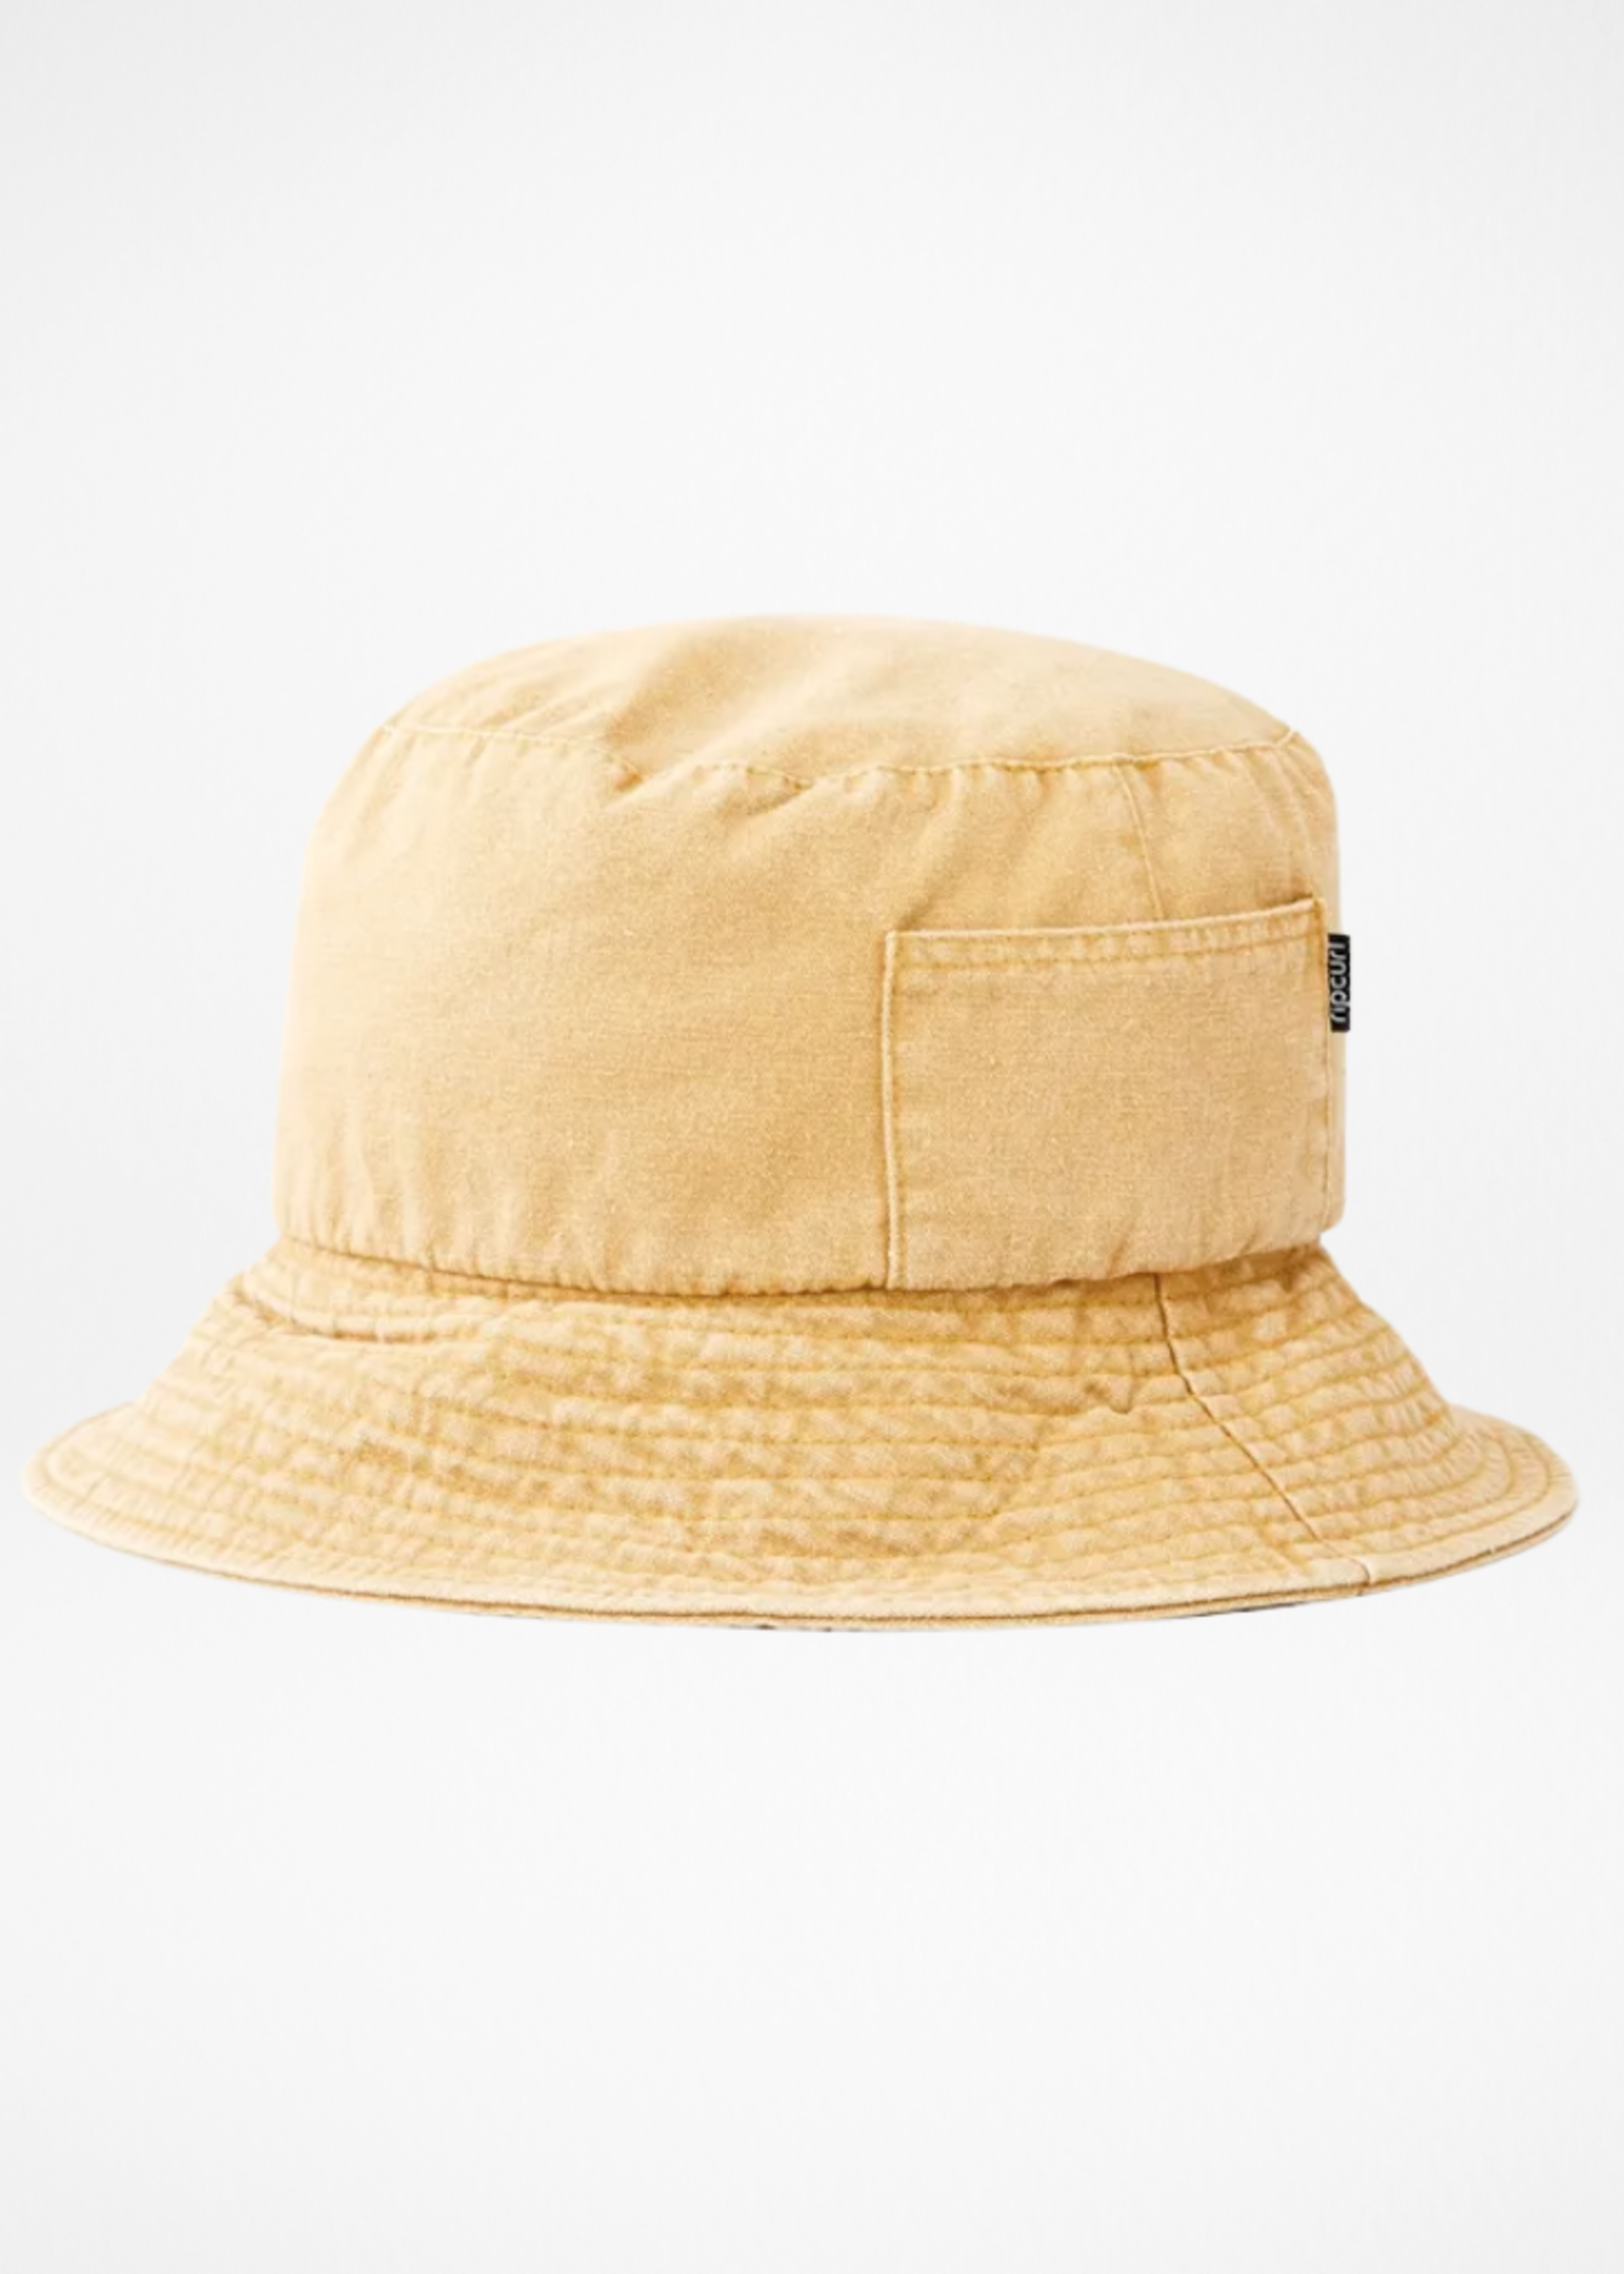 RIP CURL 21 RIP CURL WASHED BUCKET HAT